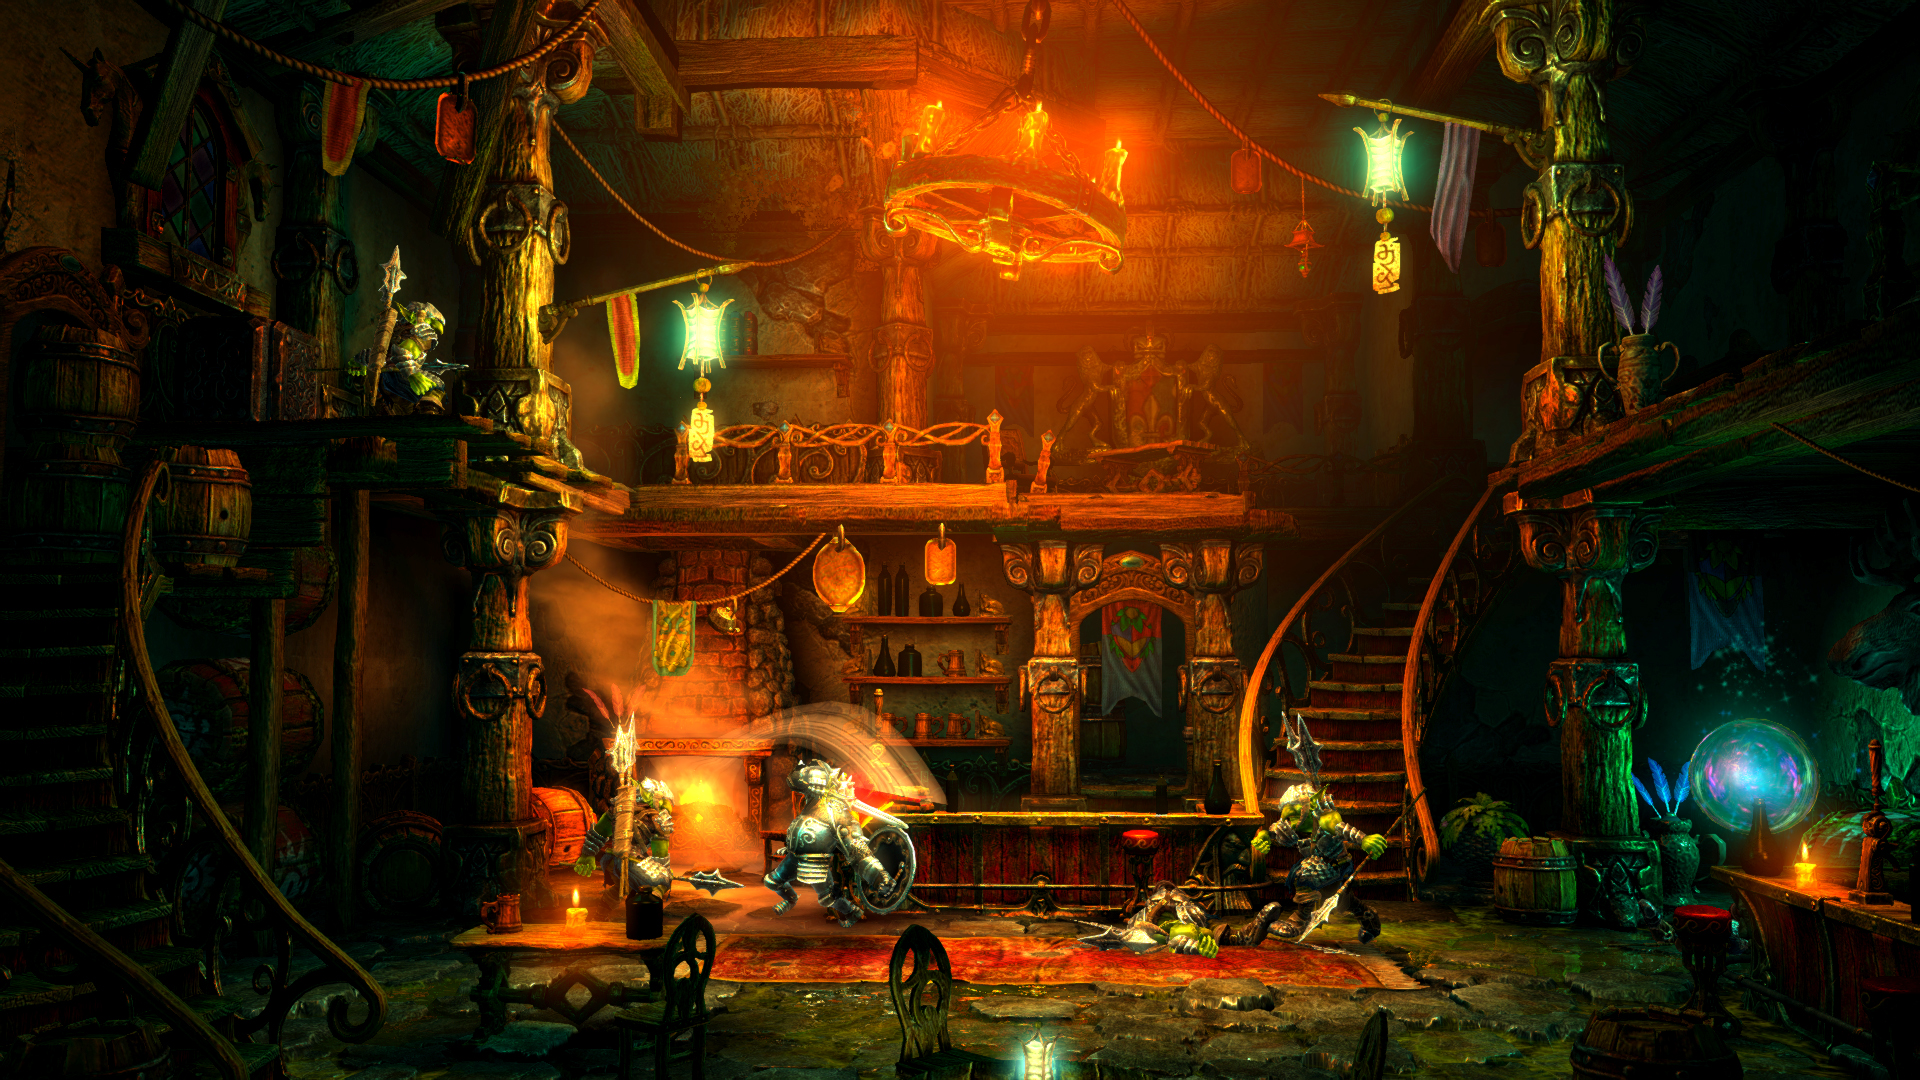 Trine 2 High Quality Background on Wallpapers Vista